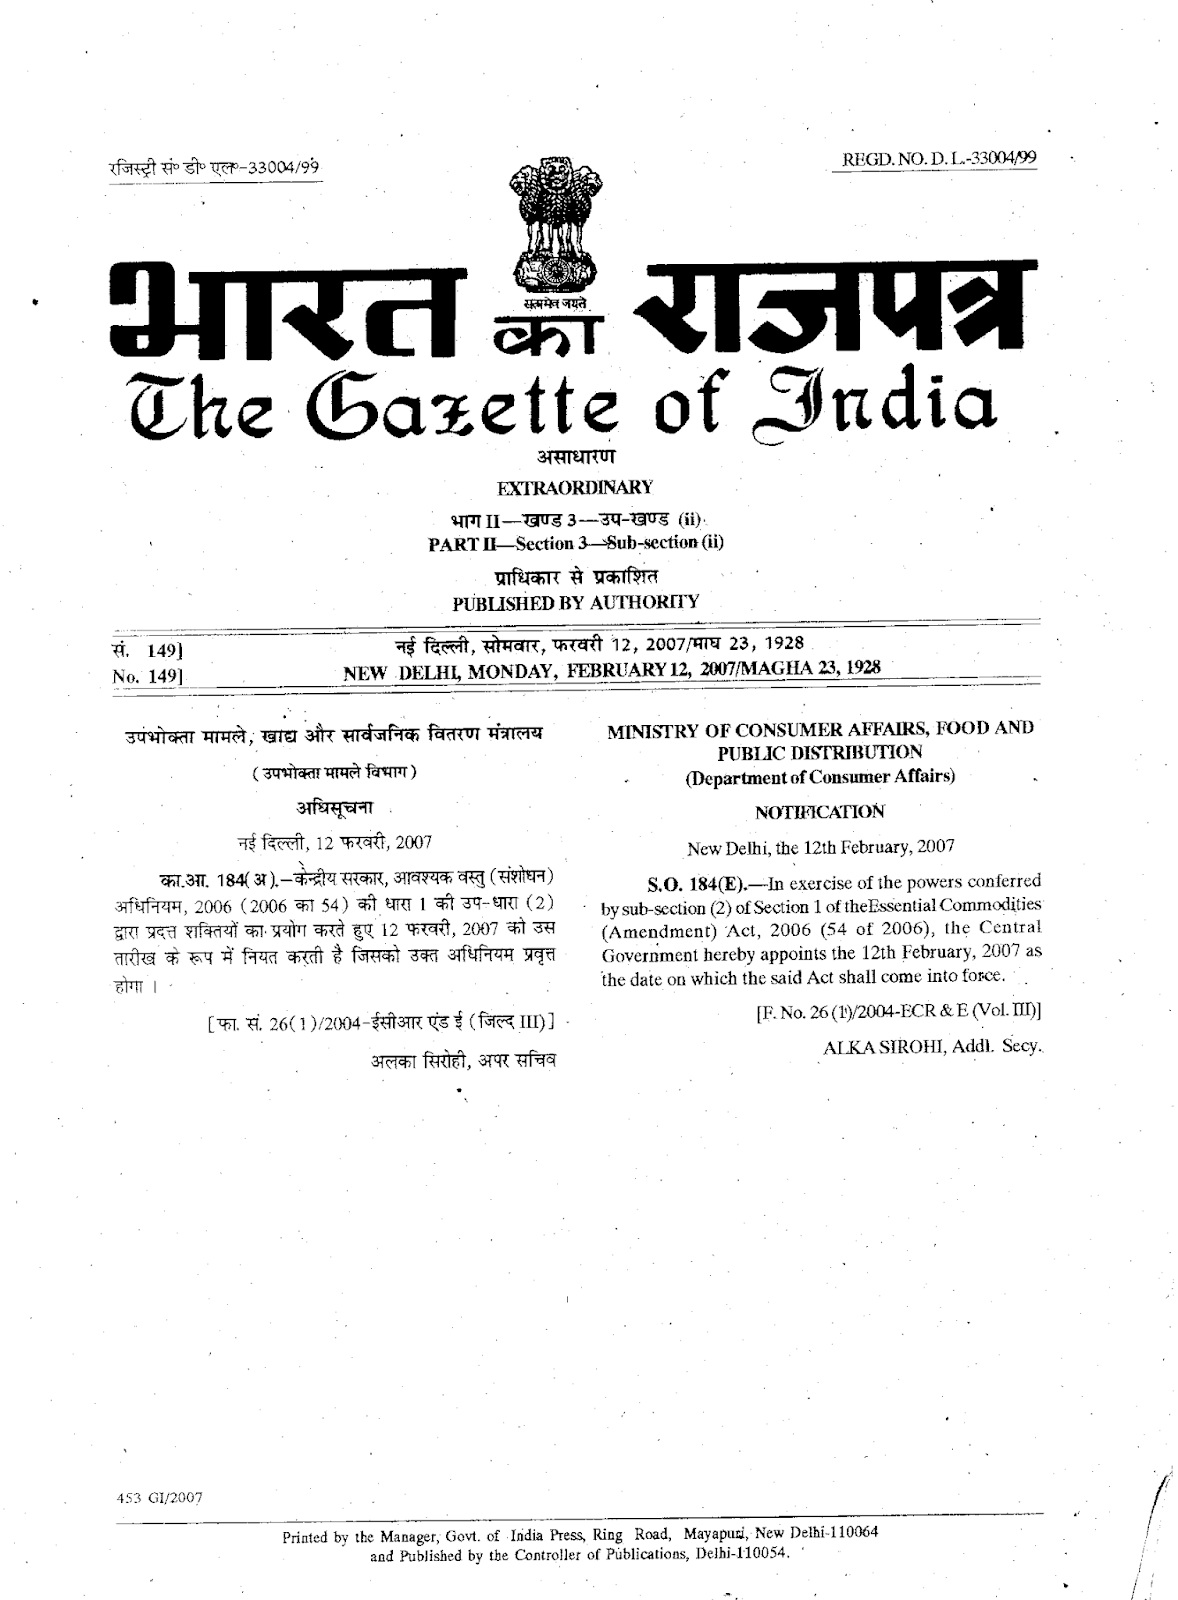 Essential Commodities (Amendment) Act 2006 notified wef 12 February 2007